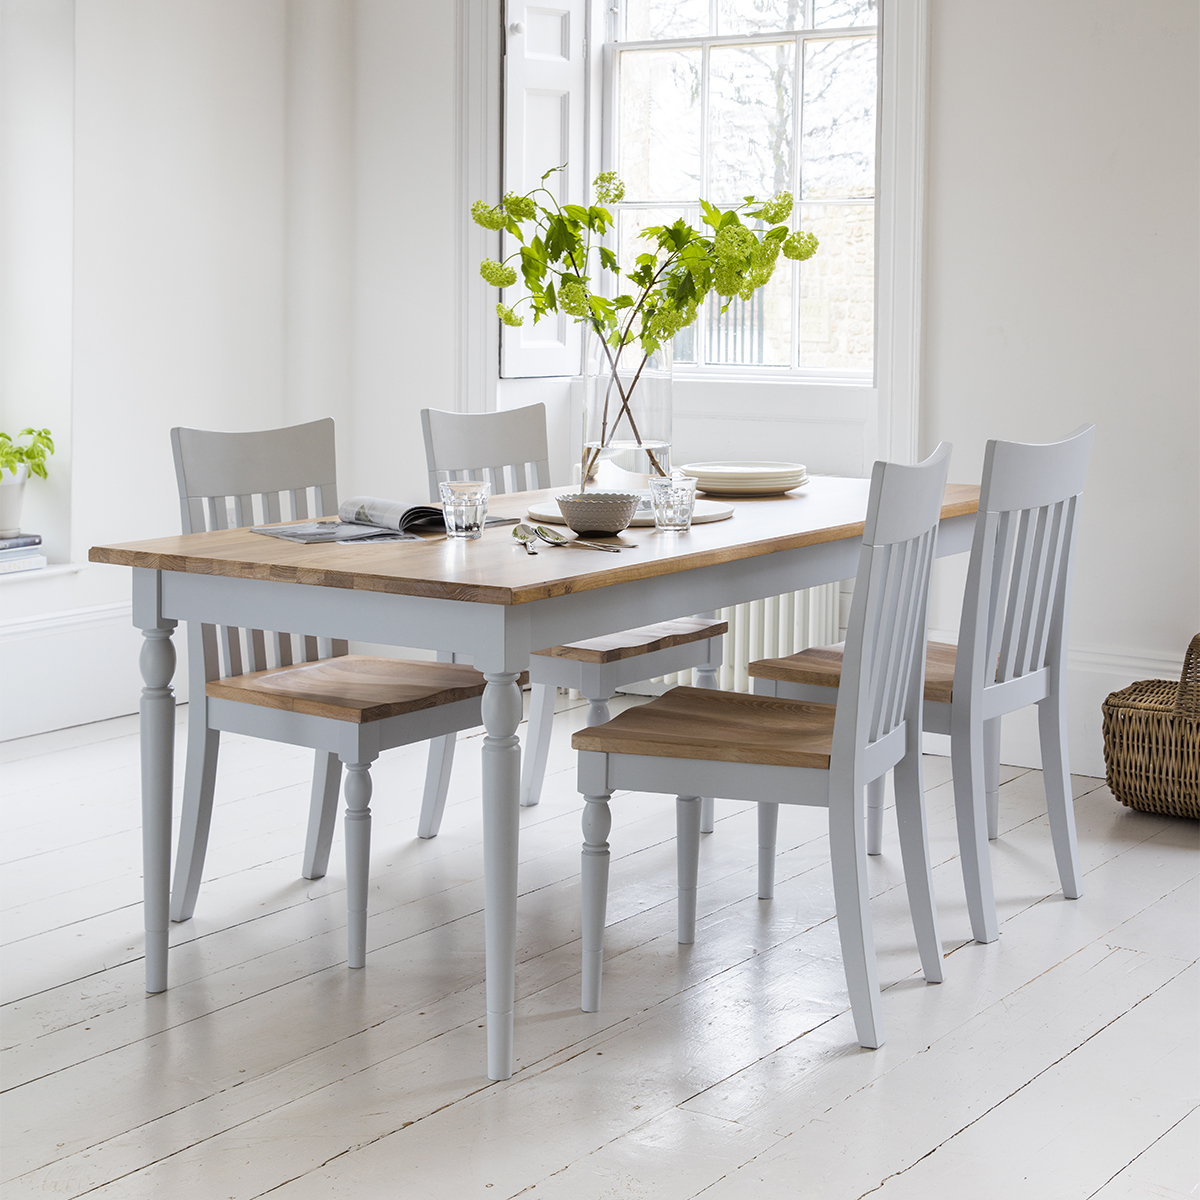 Marlow Dining table  - £646